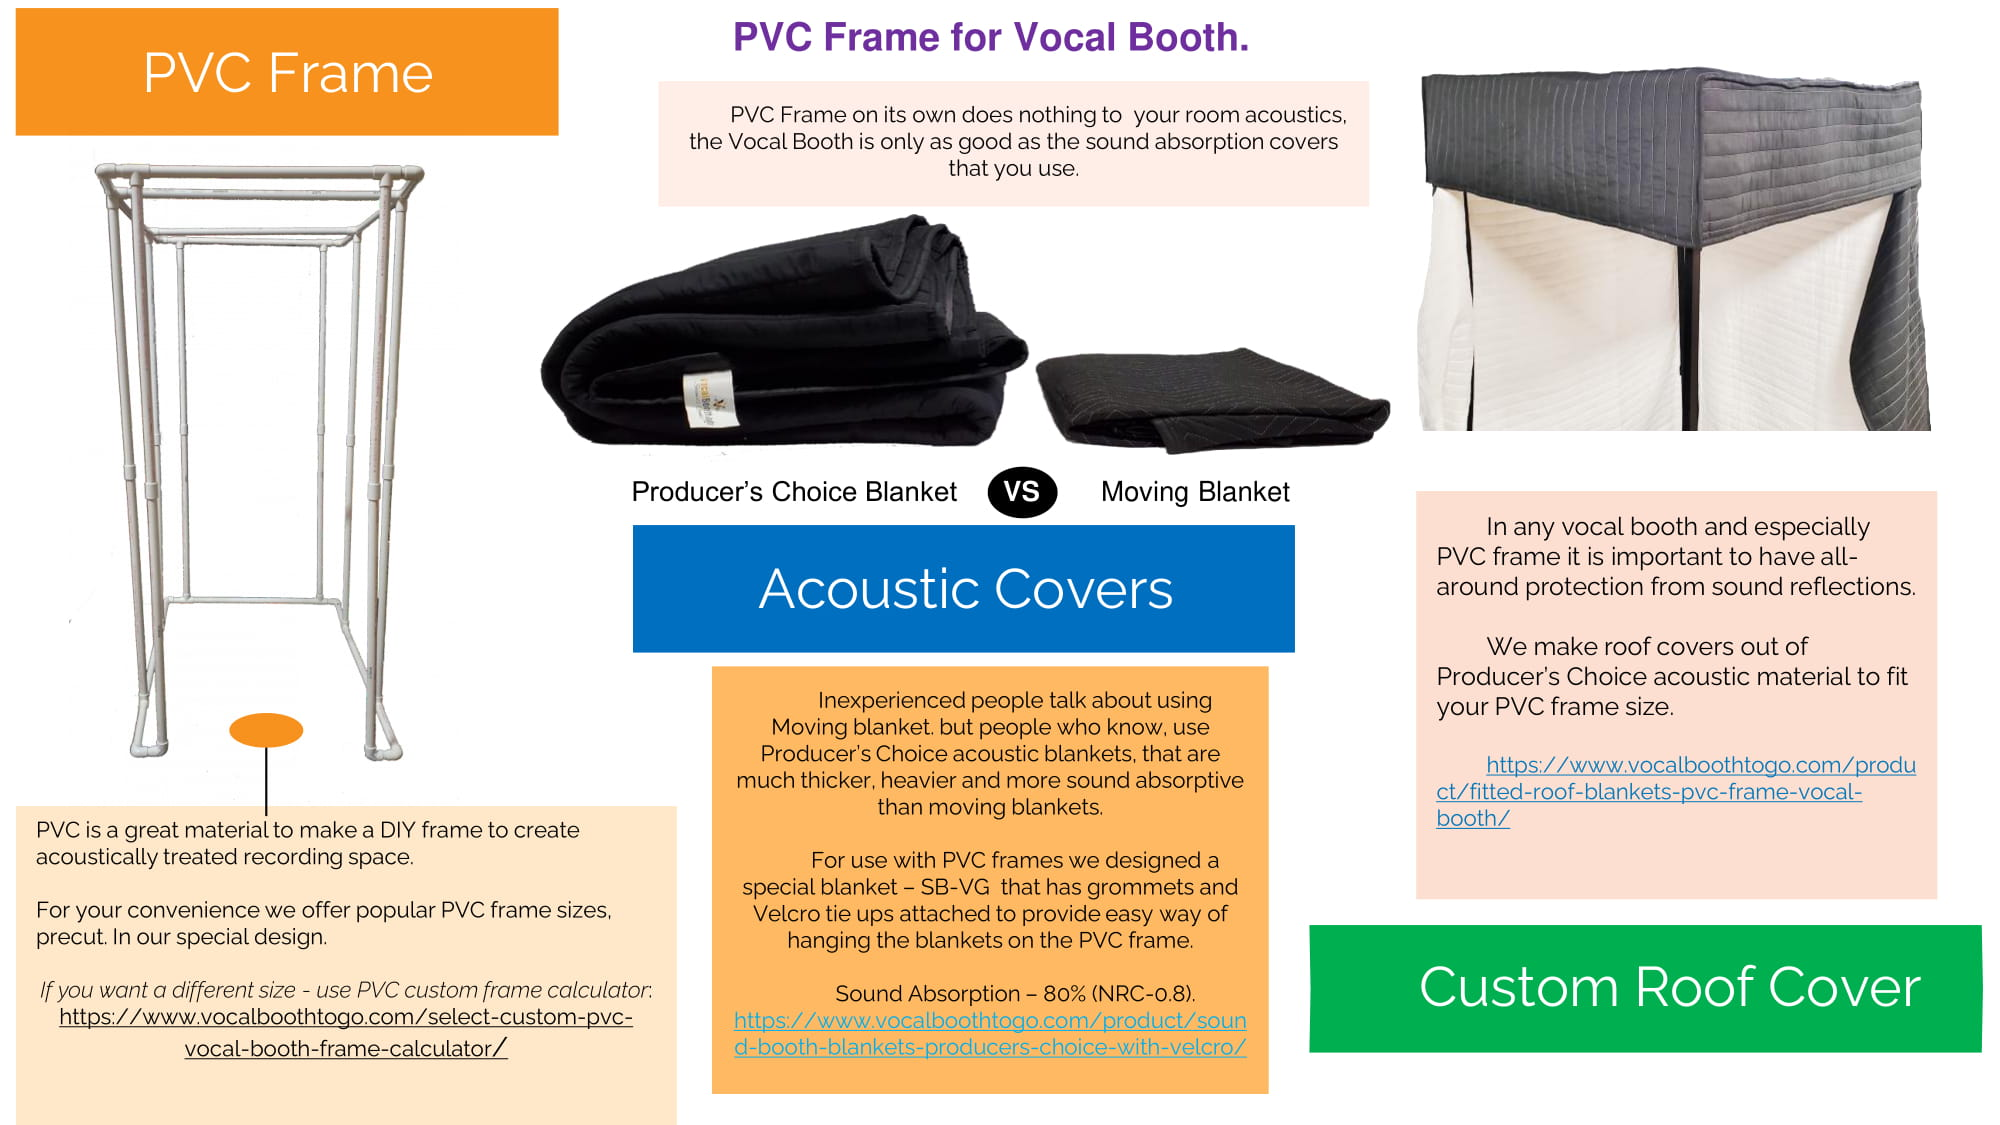 PVC Frame for Vocal Booth, Acoustic Covers Custom and Custom Roof Cover